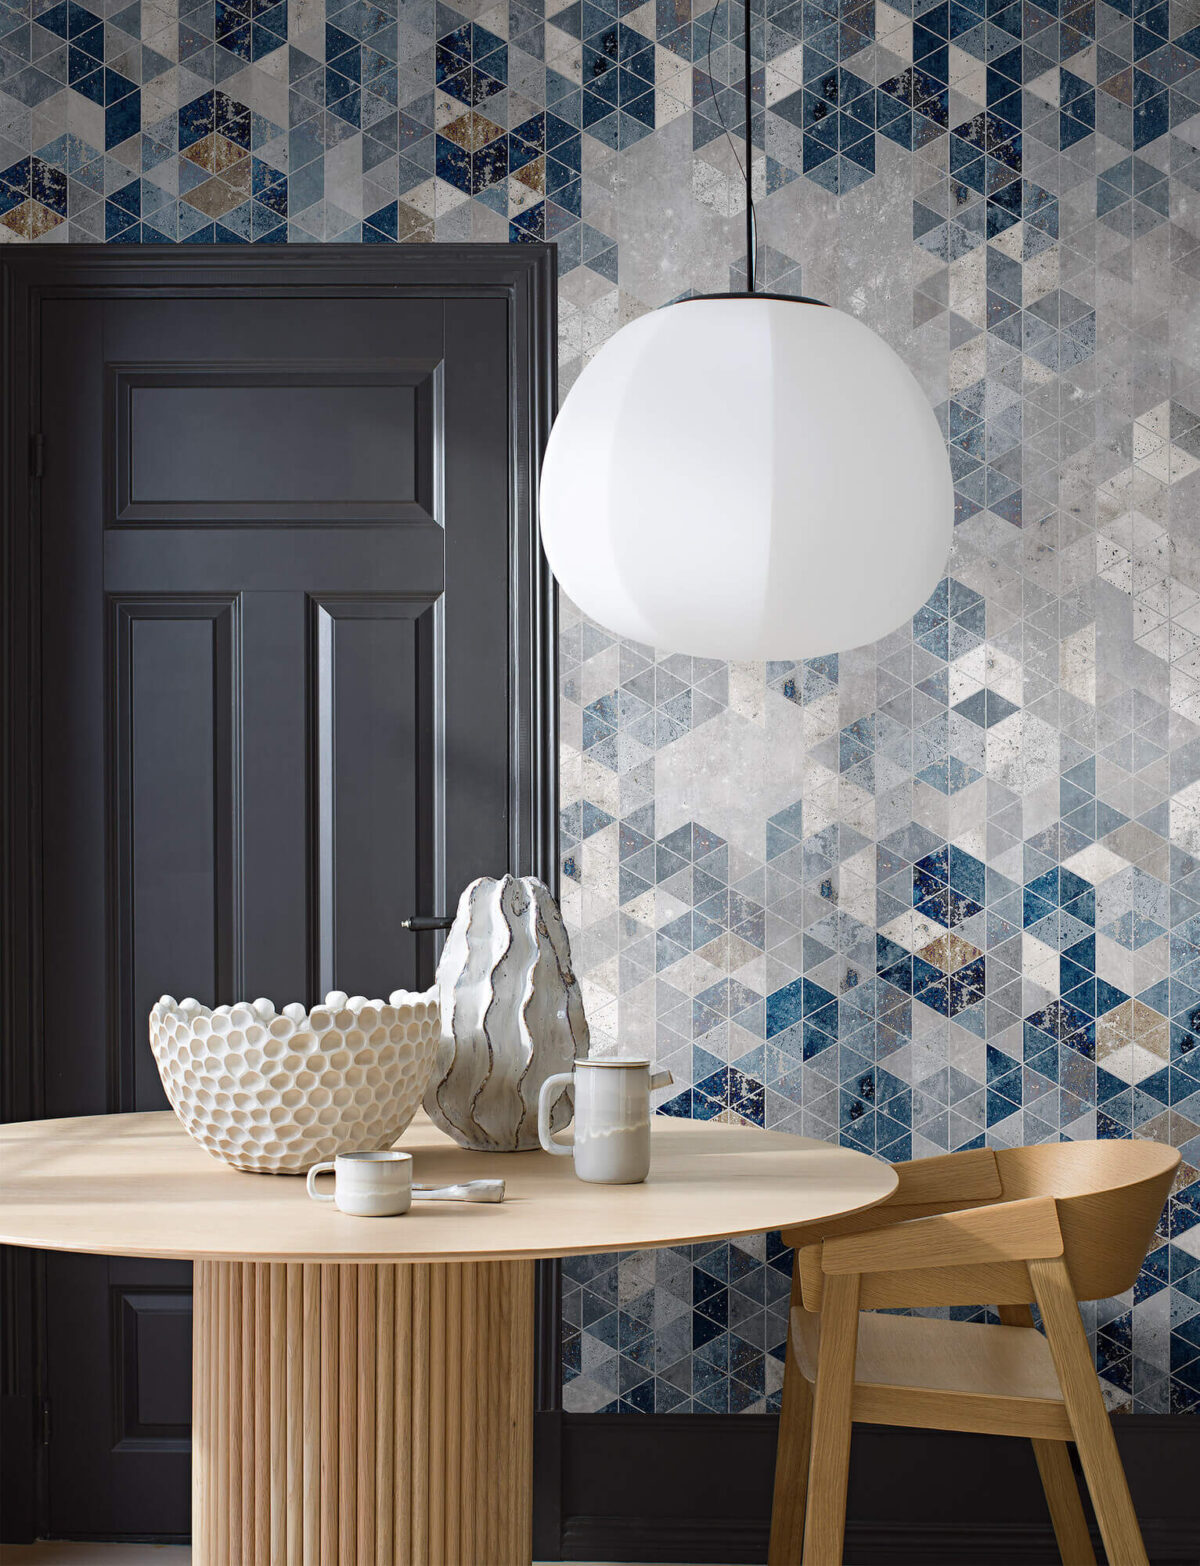 Graphic world - Graphic Wall - 8846 -